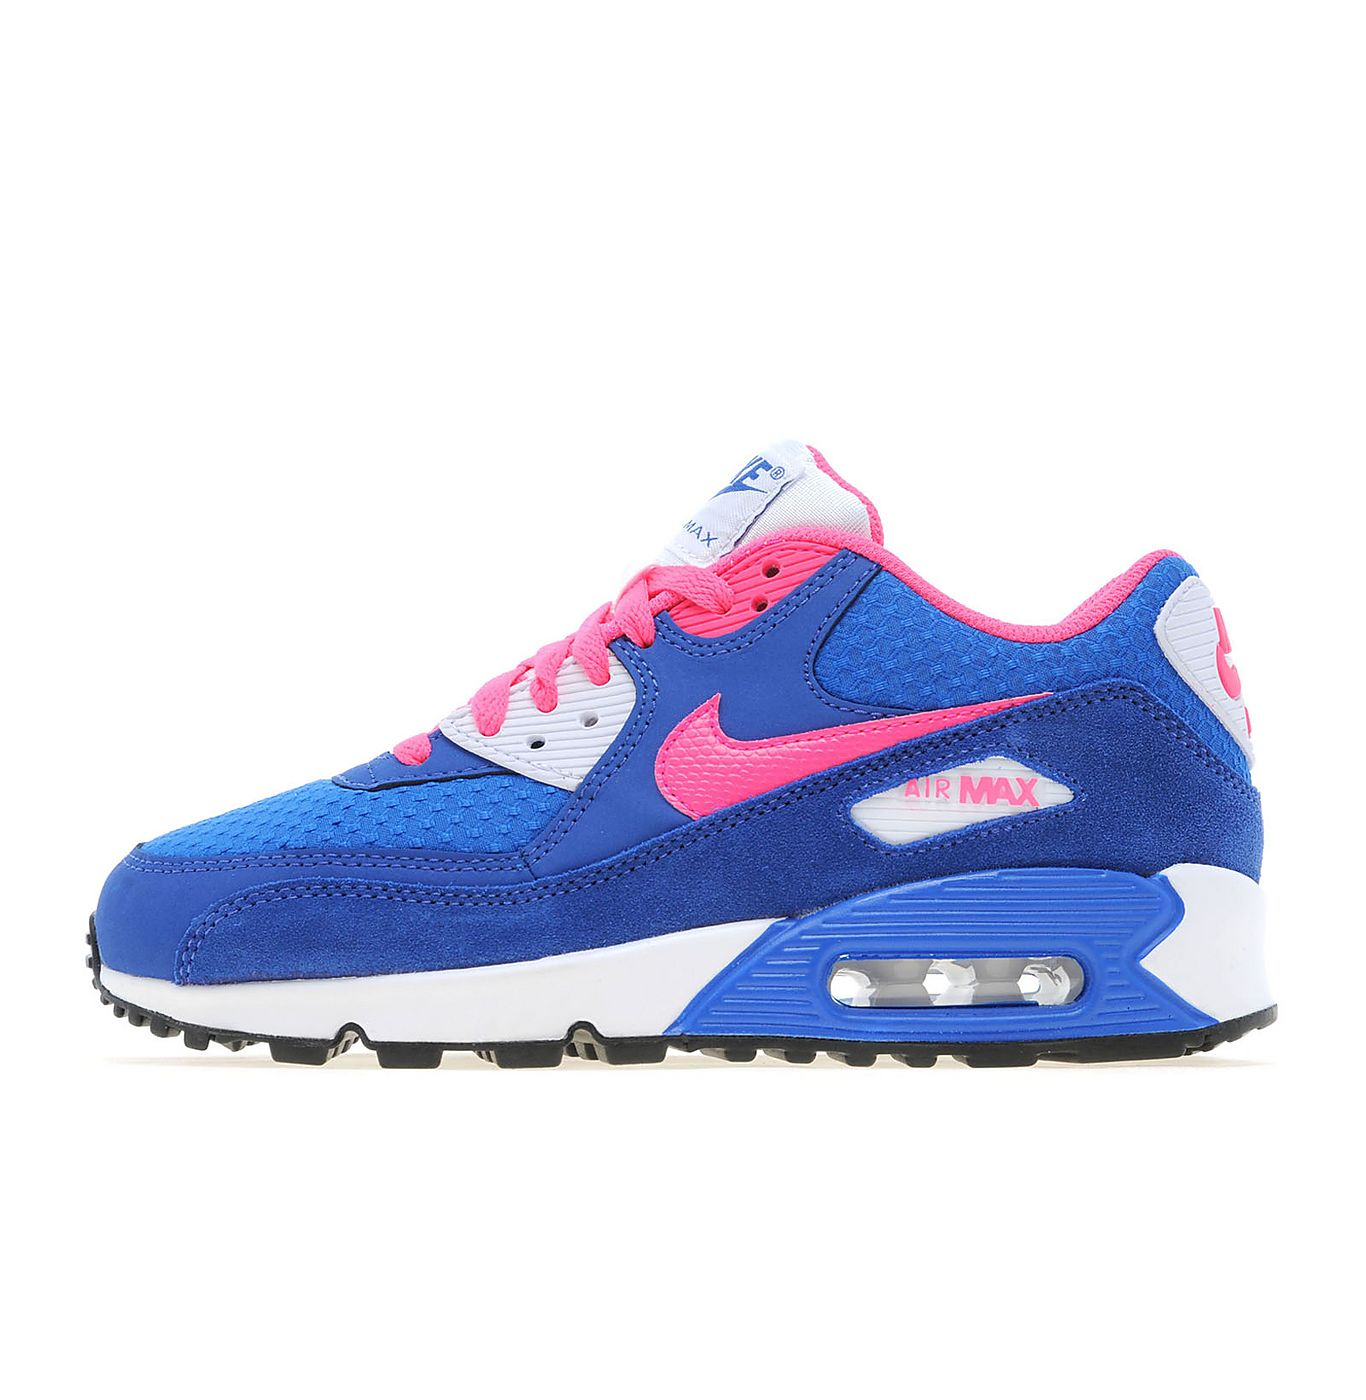 748d8e41f59eb Nike Air Max 90 GS